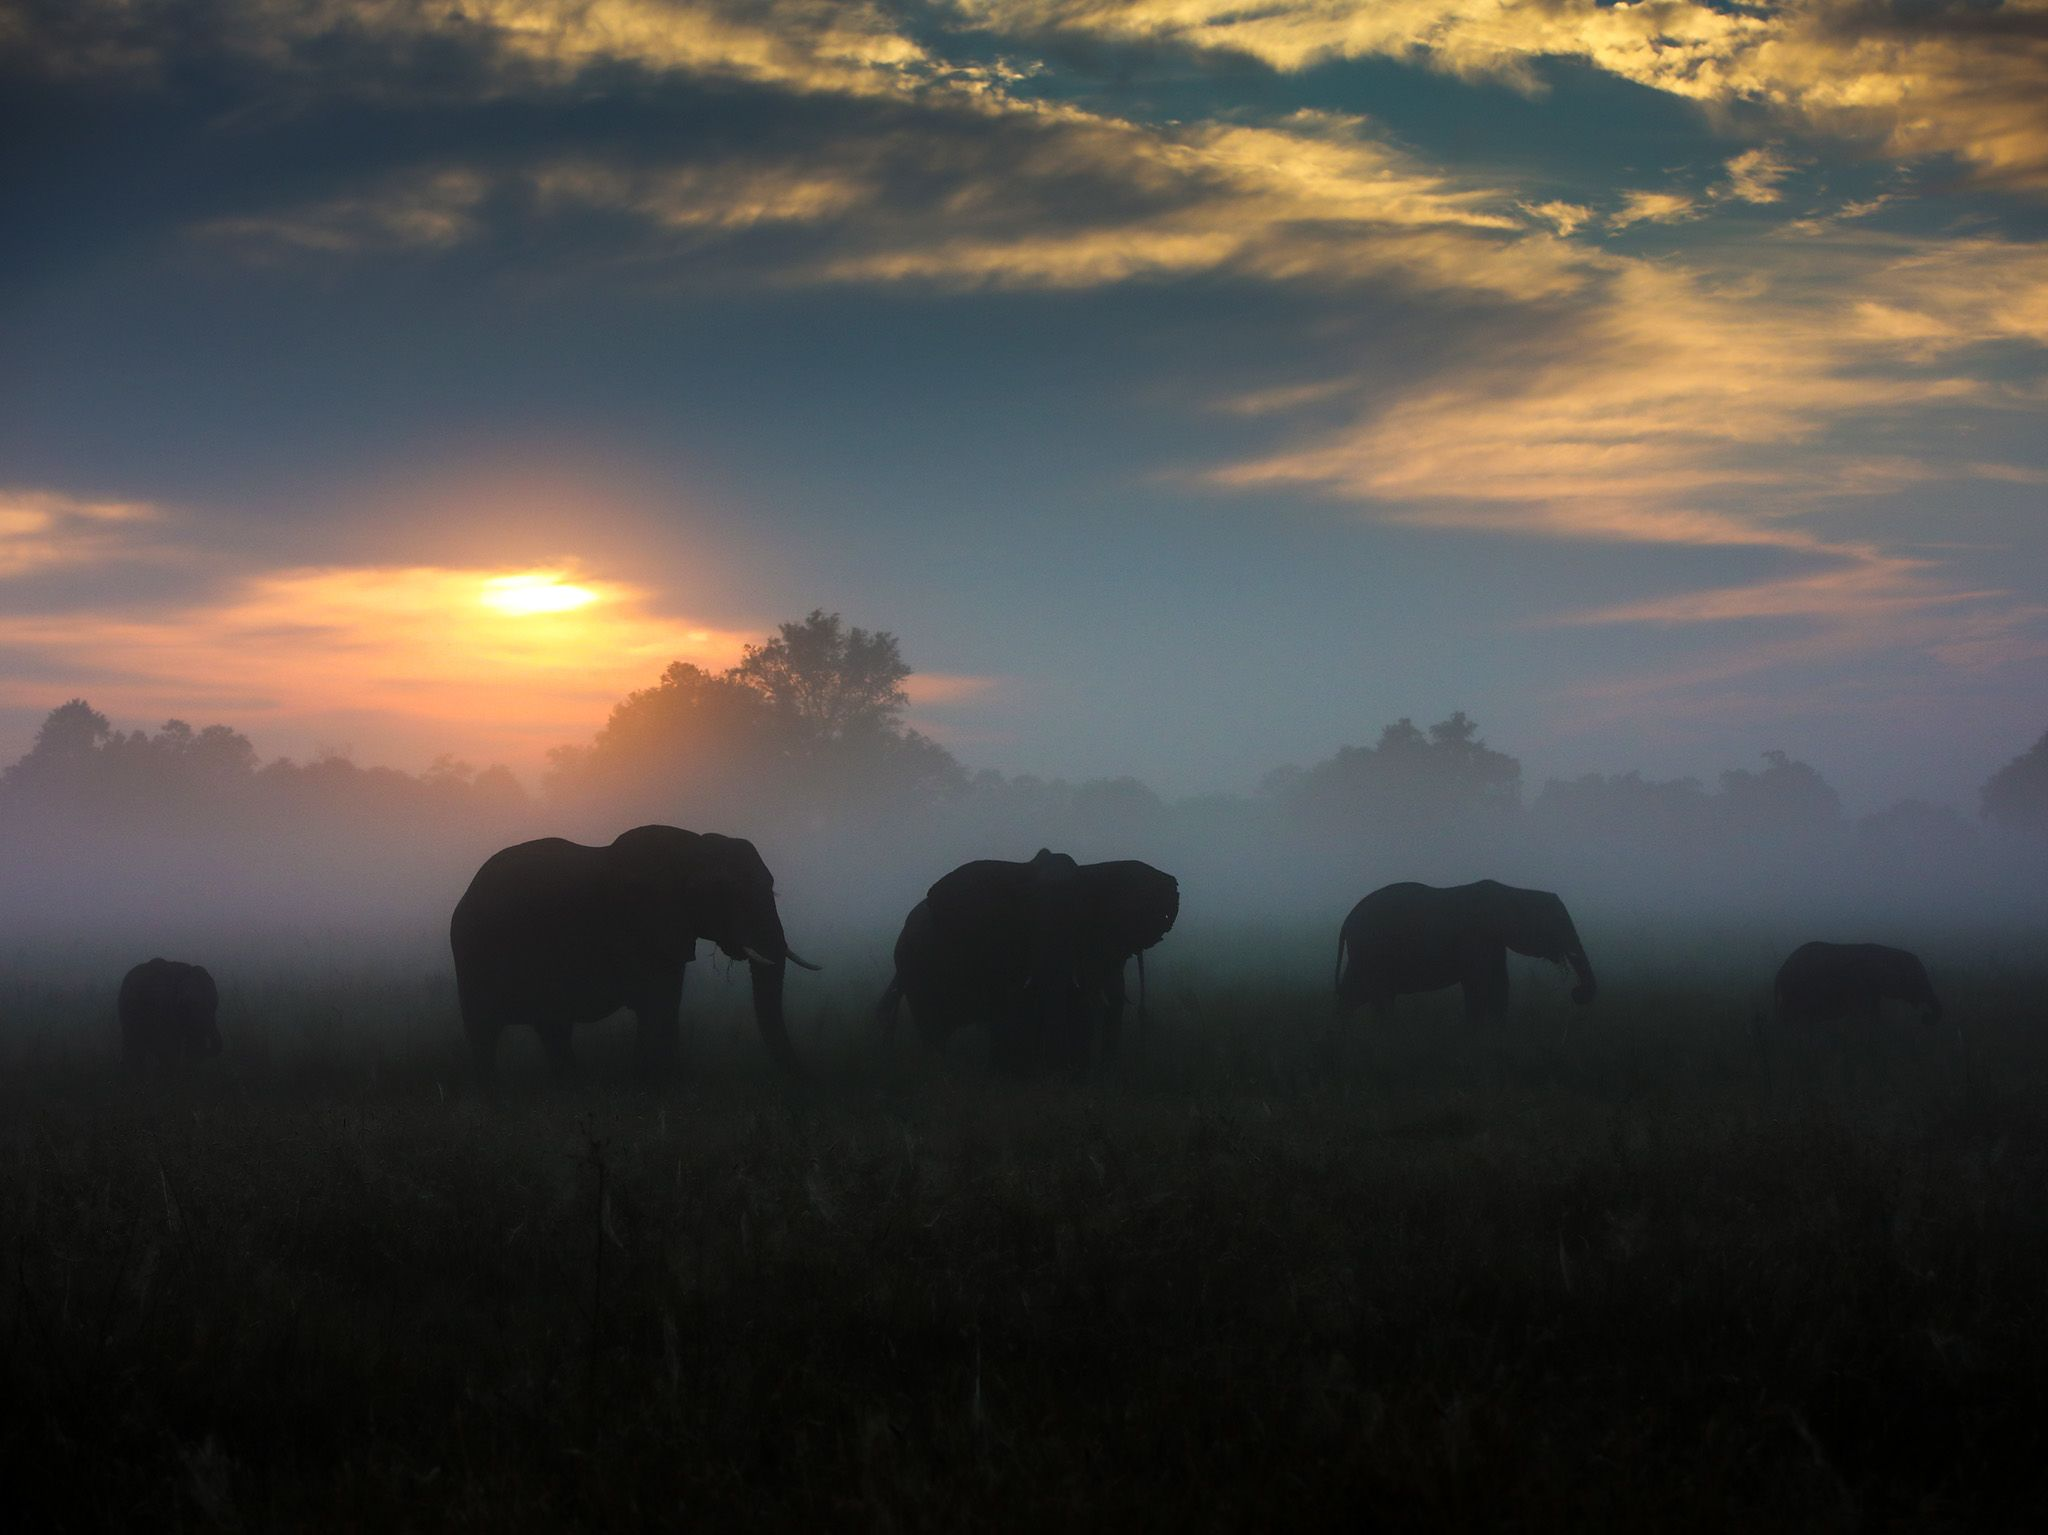 Botswana:  A herd of Elephant graze in an open floodplain surrounded by mist. The sun begins to... [Foto del giorno - November 2018]